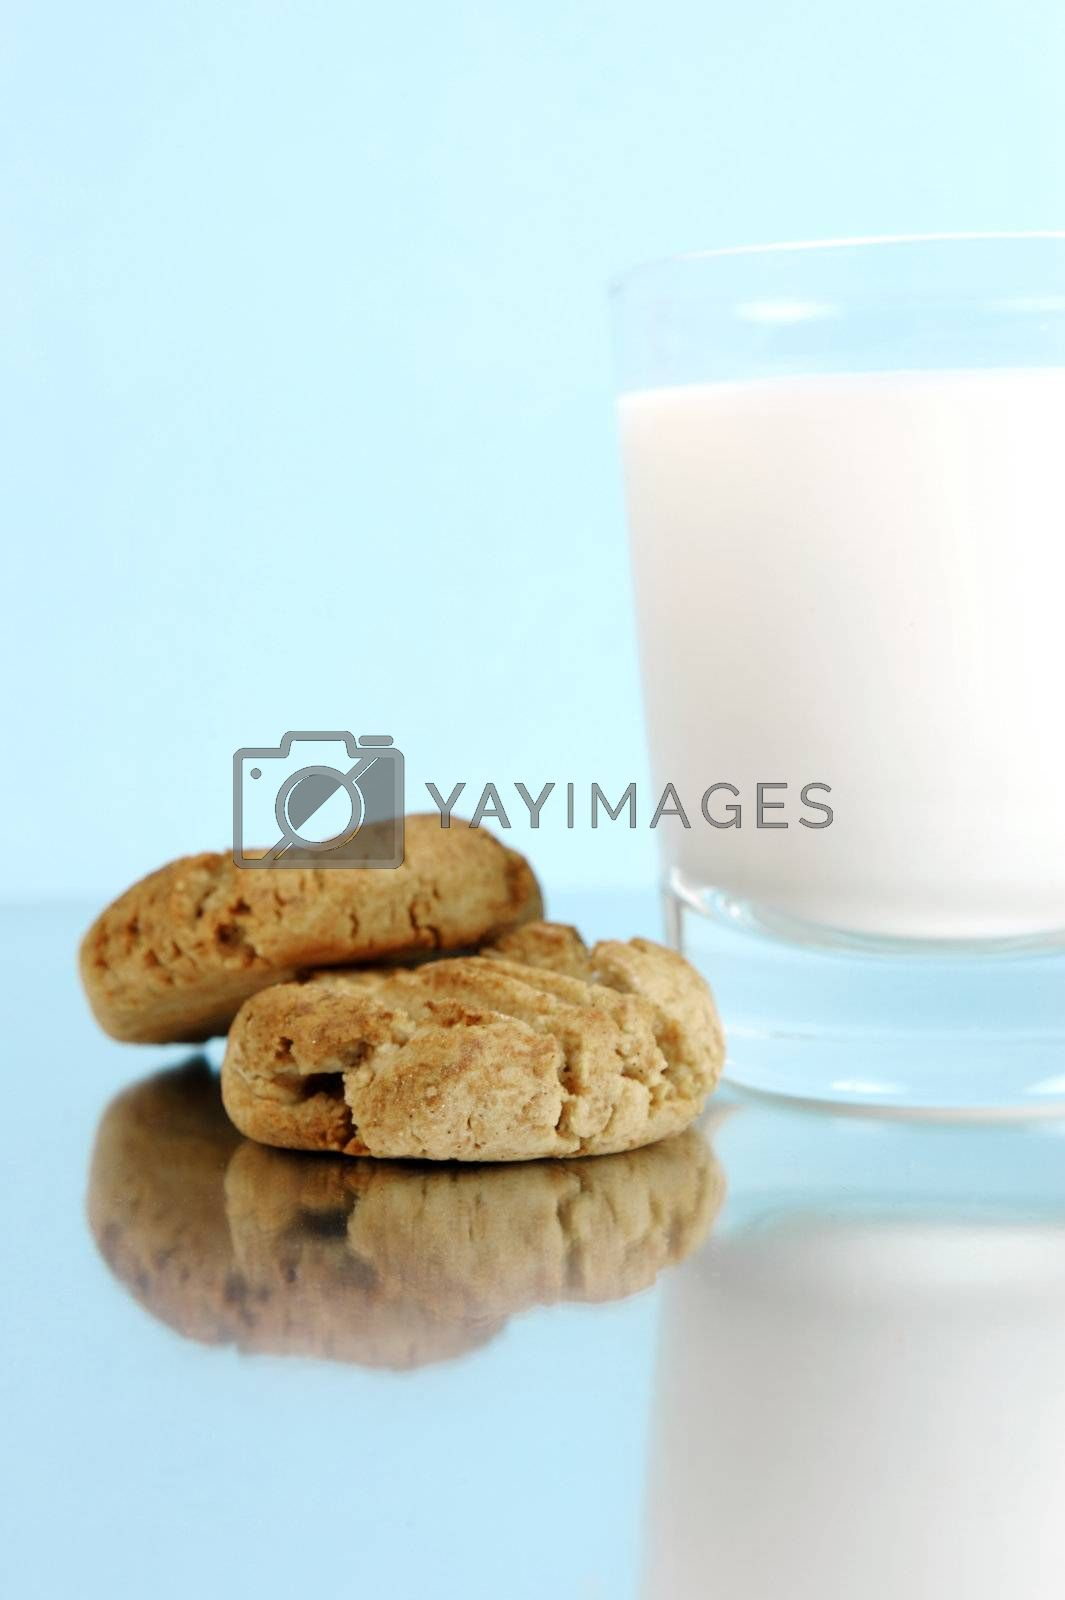 Milk & Cookies by Kitch